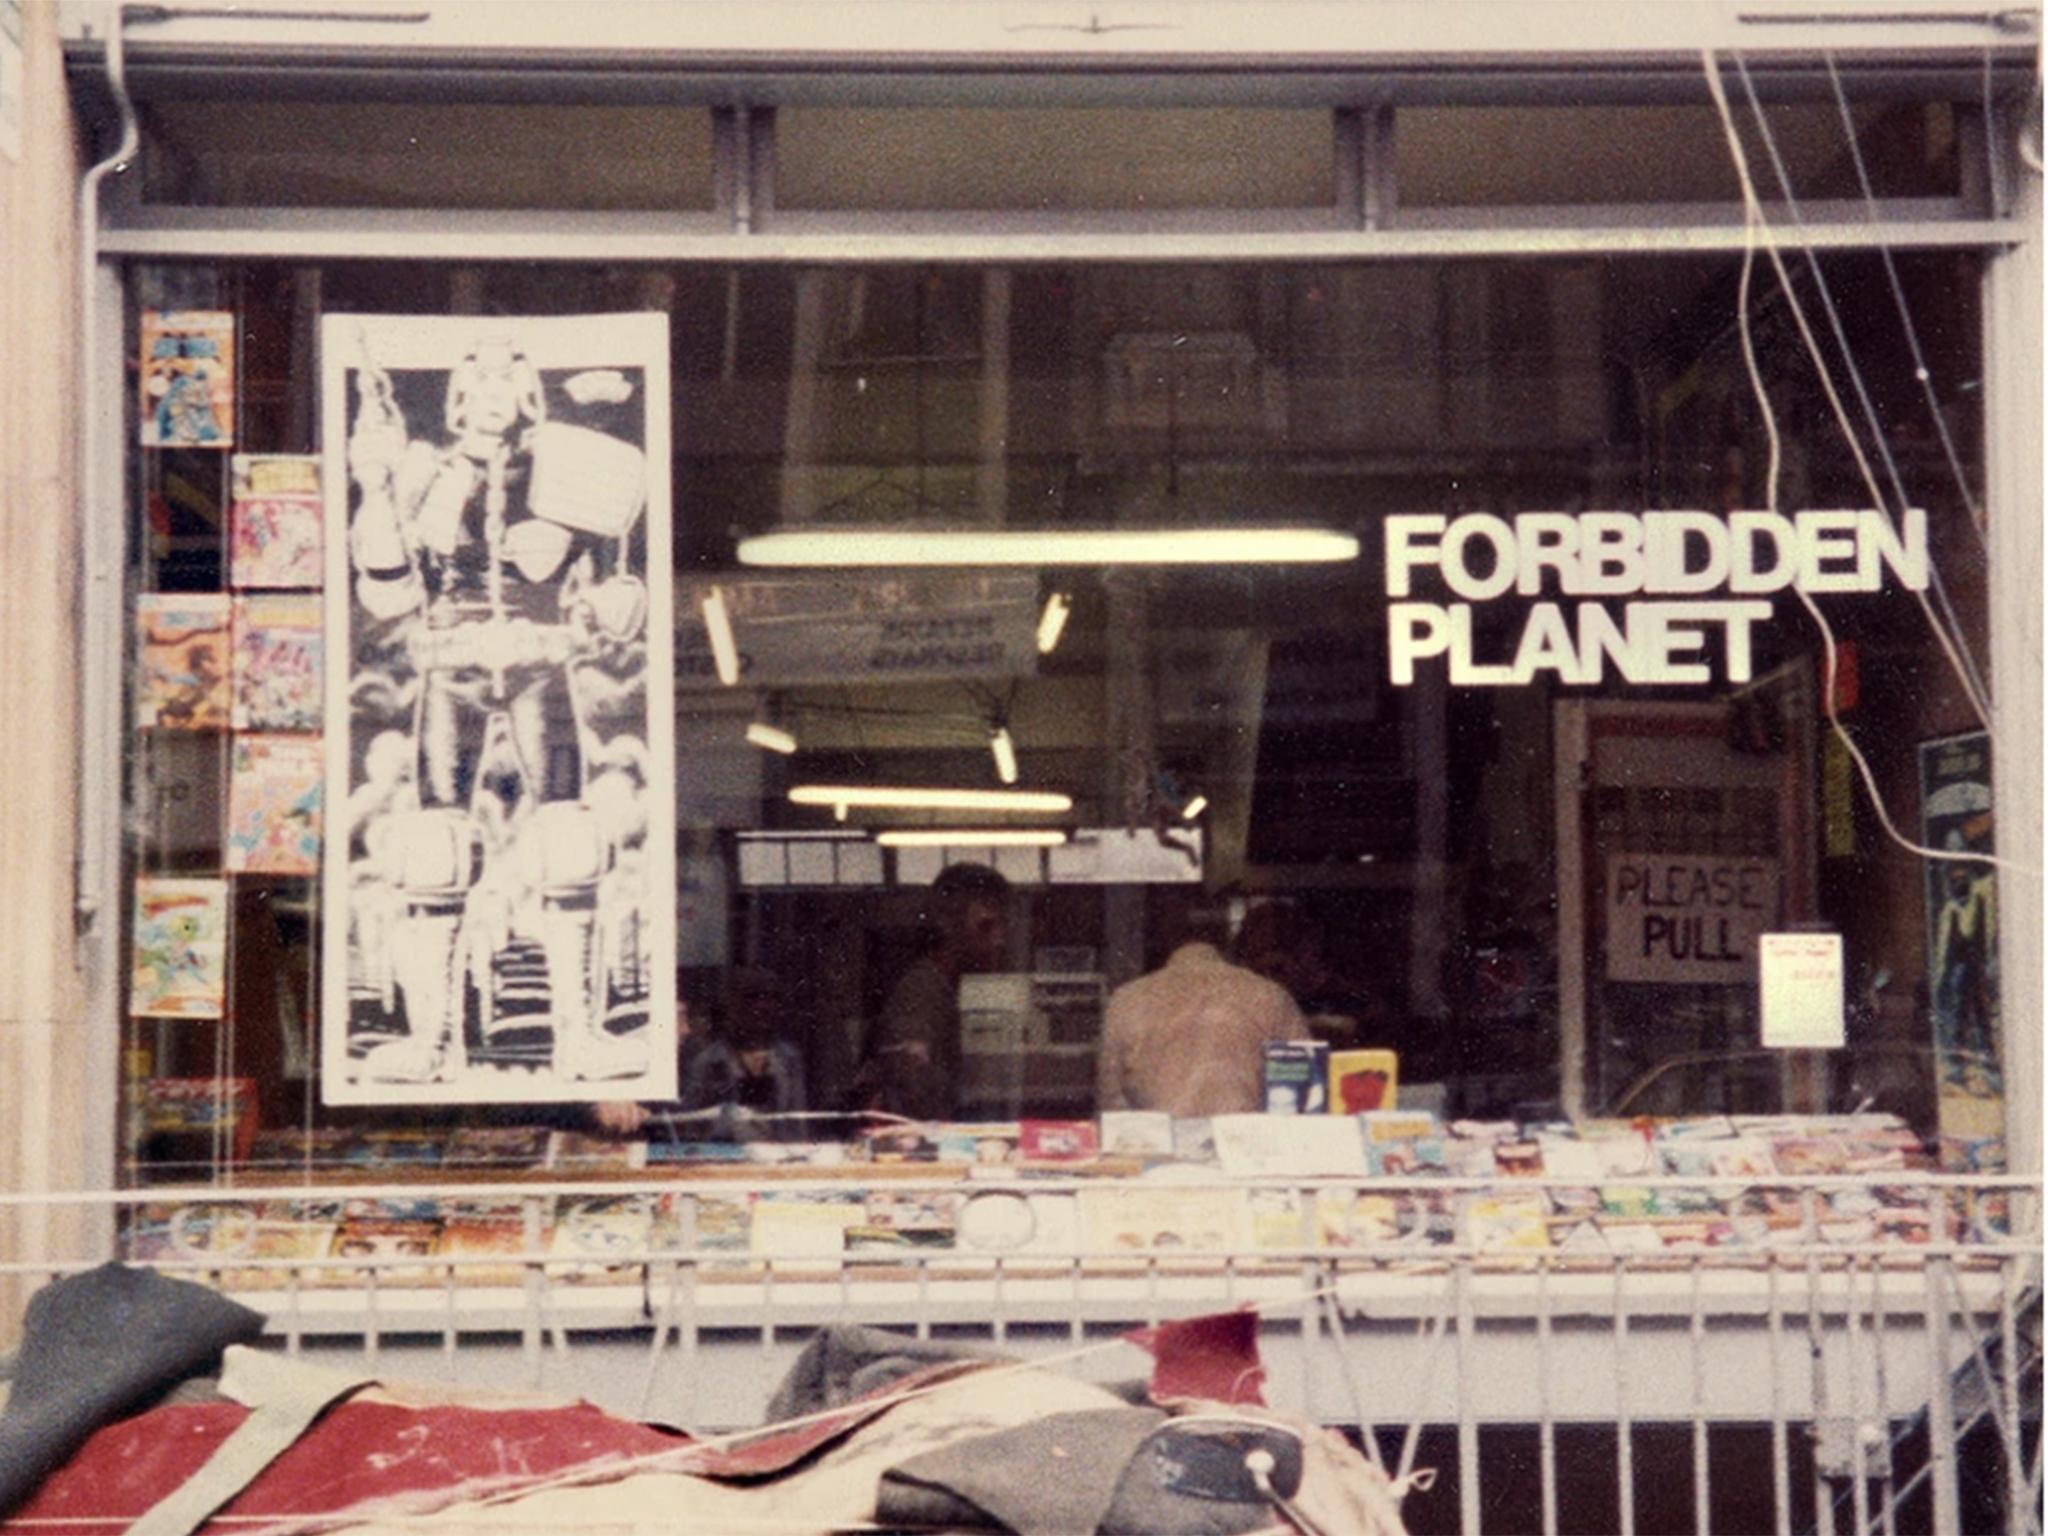 How Forbidden Planet changed the way we consume geek culture